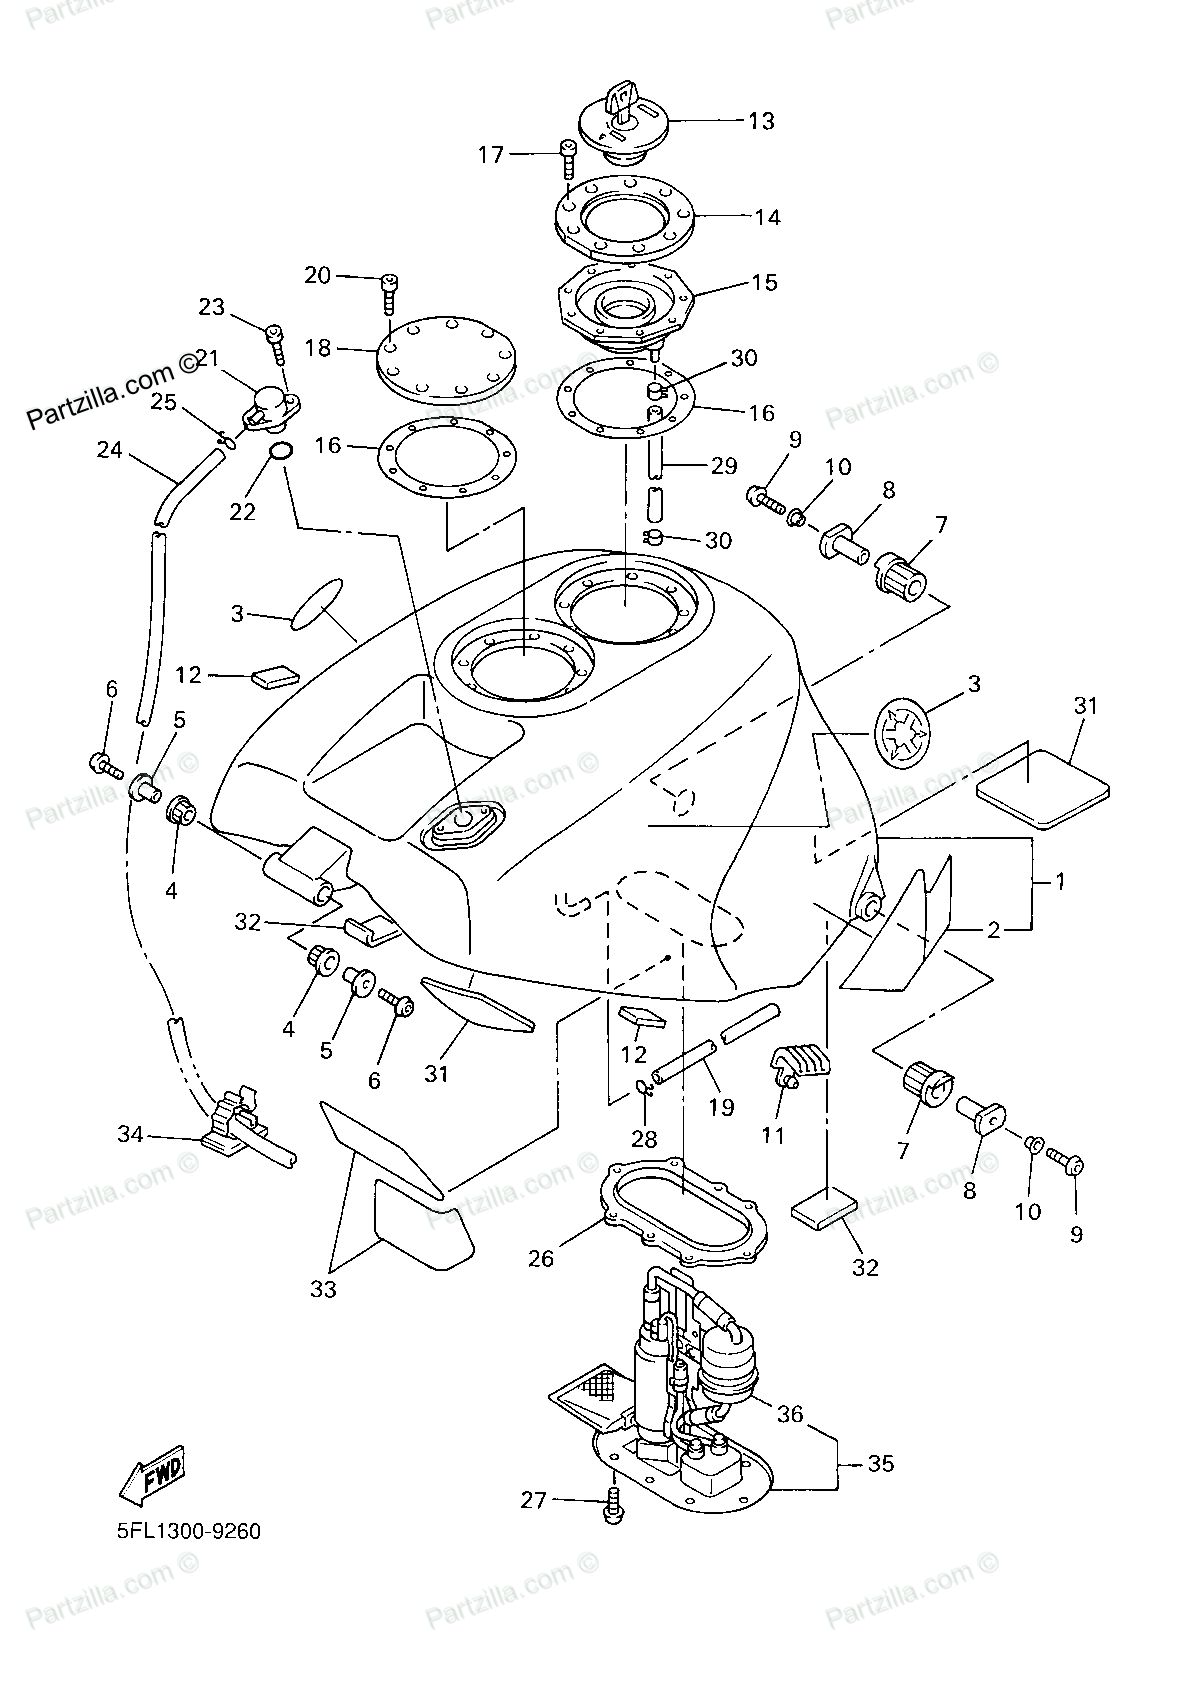 Zinger Yamaha Atv Parts Diagram